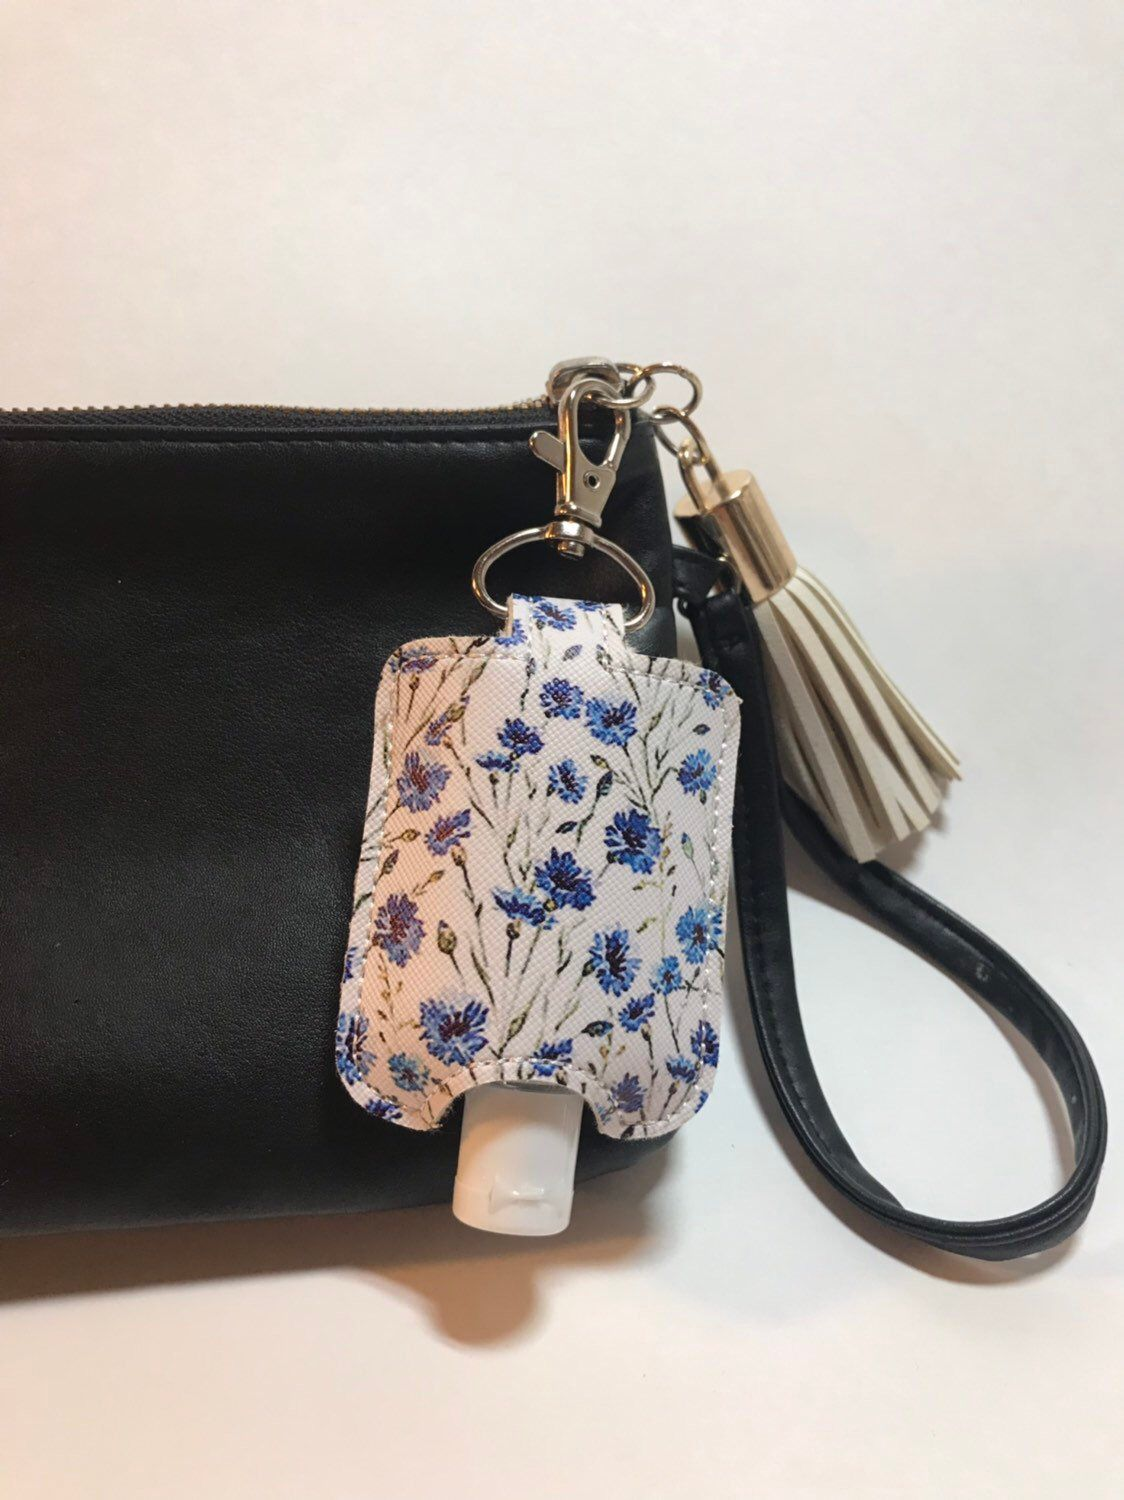 Hand Sanitizer Holder Keychain English Garden Hand Gel Case